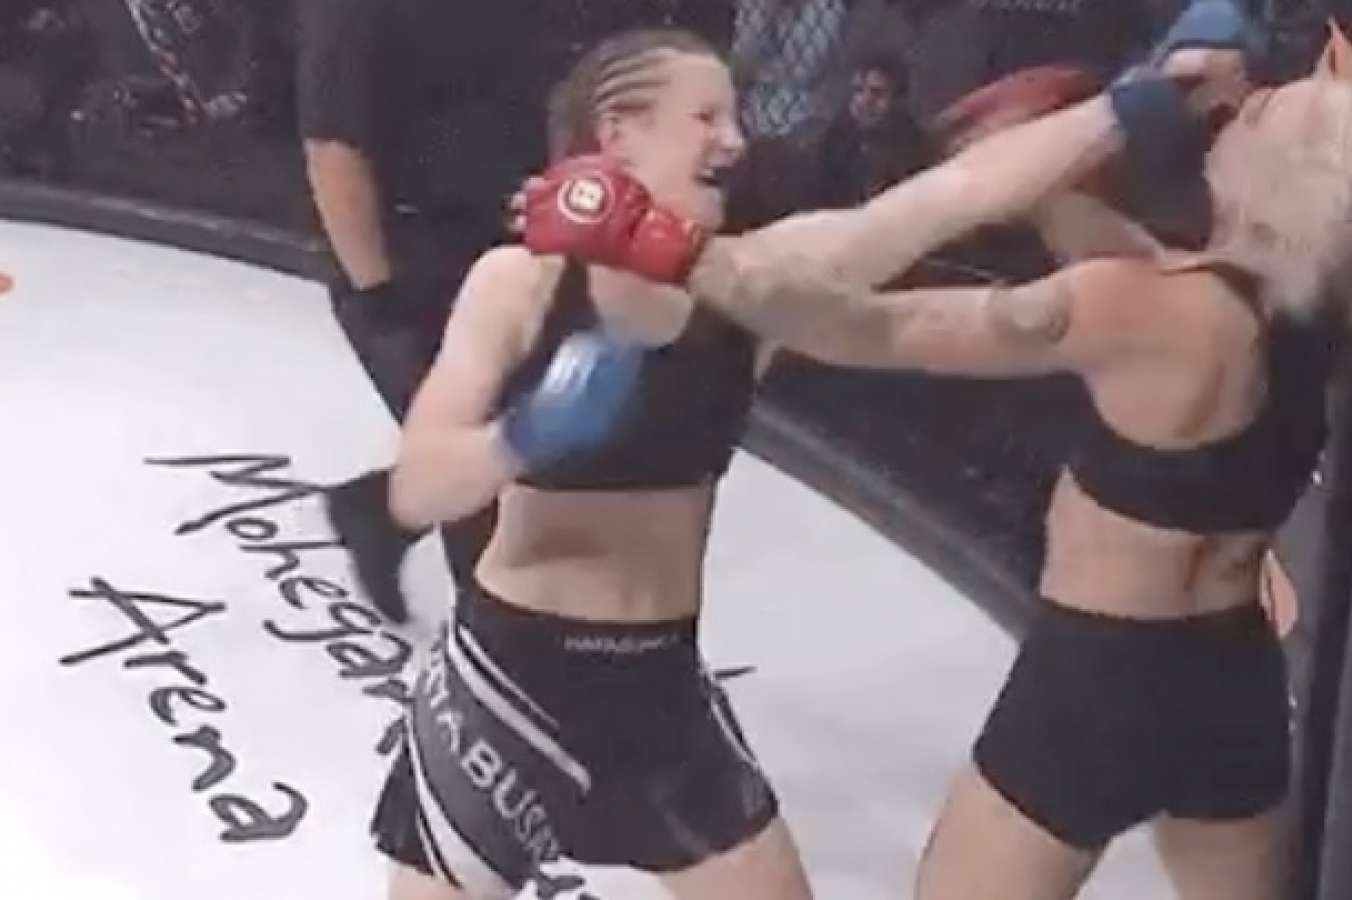 Fight In Porn porn star demolished in first professional mma fight | odds